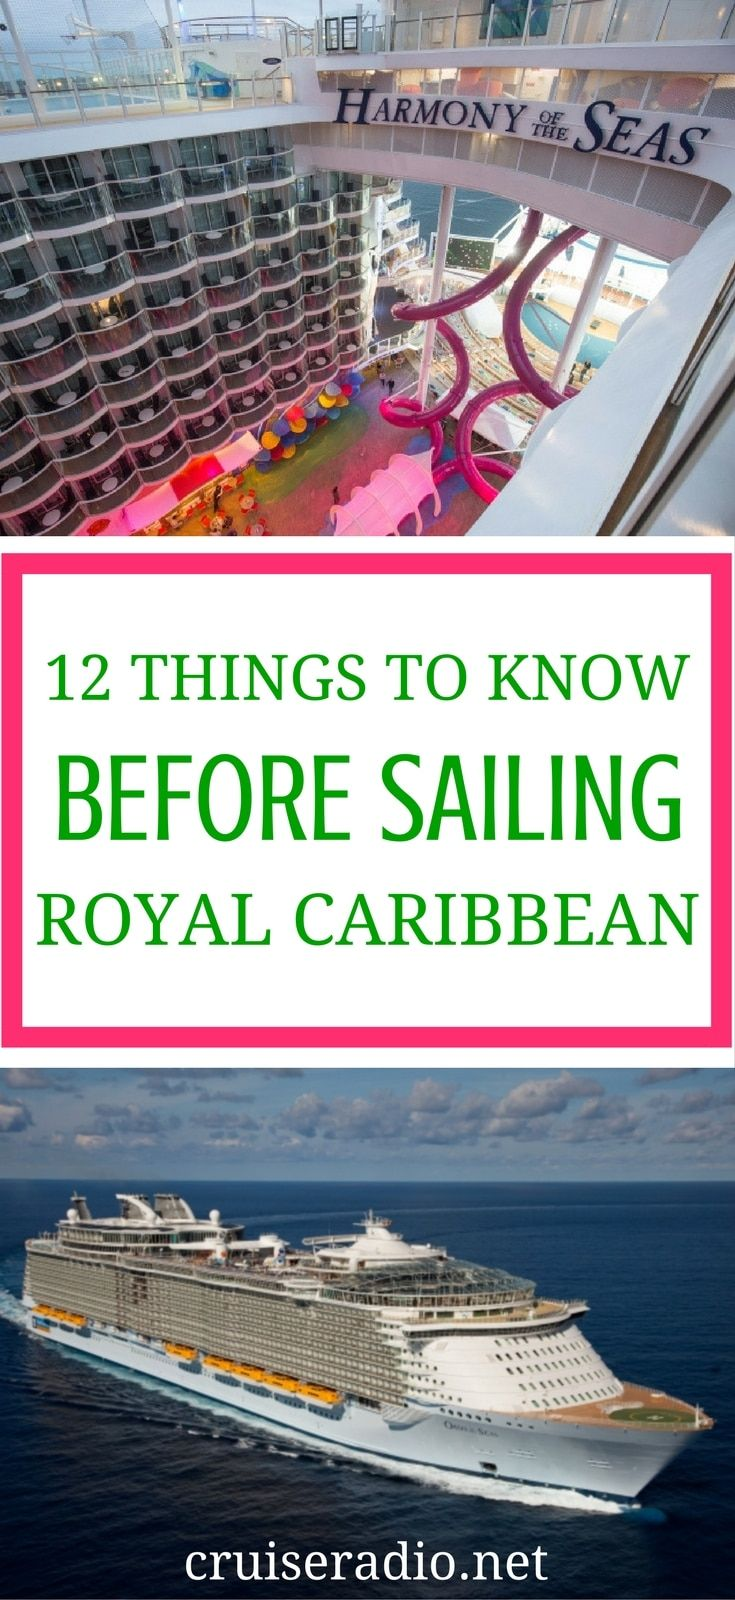 If you're considering booking a cruise with Royal Caribbean, or already have, check out our 12 things you need to know before sailing!